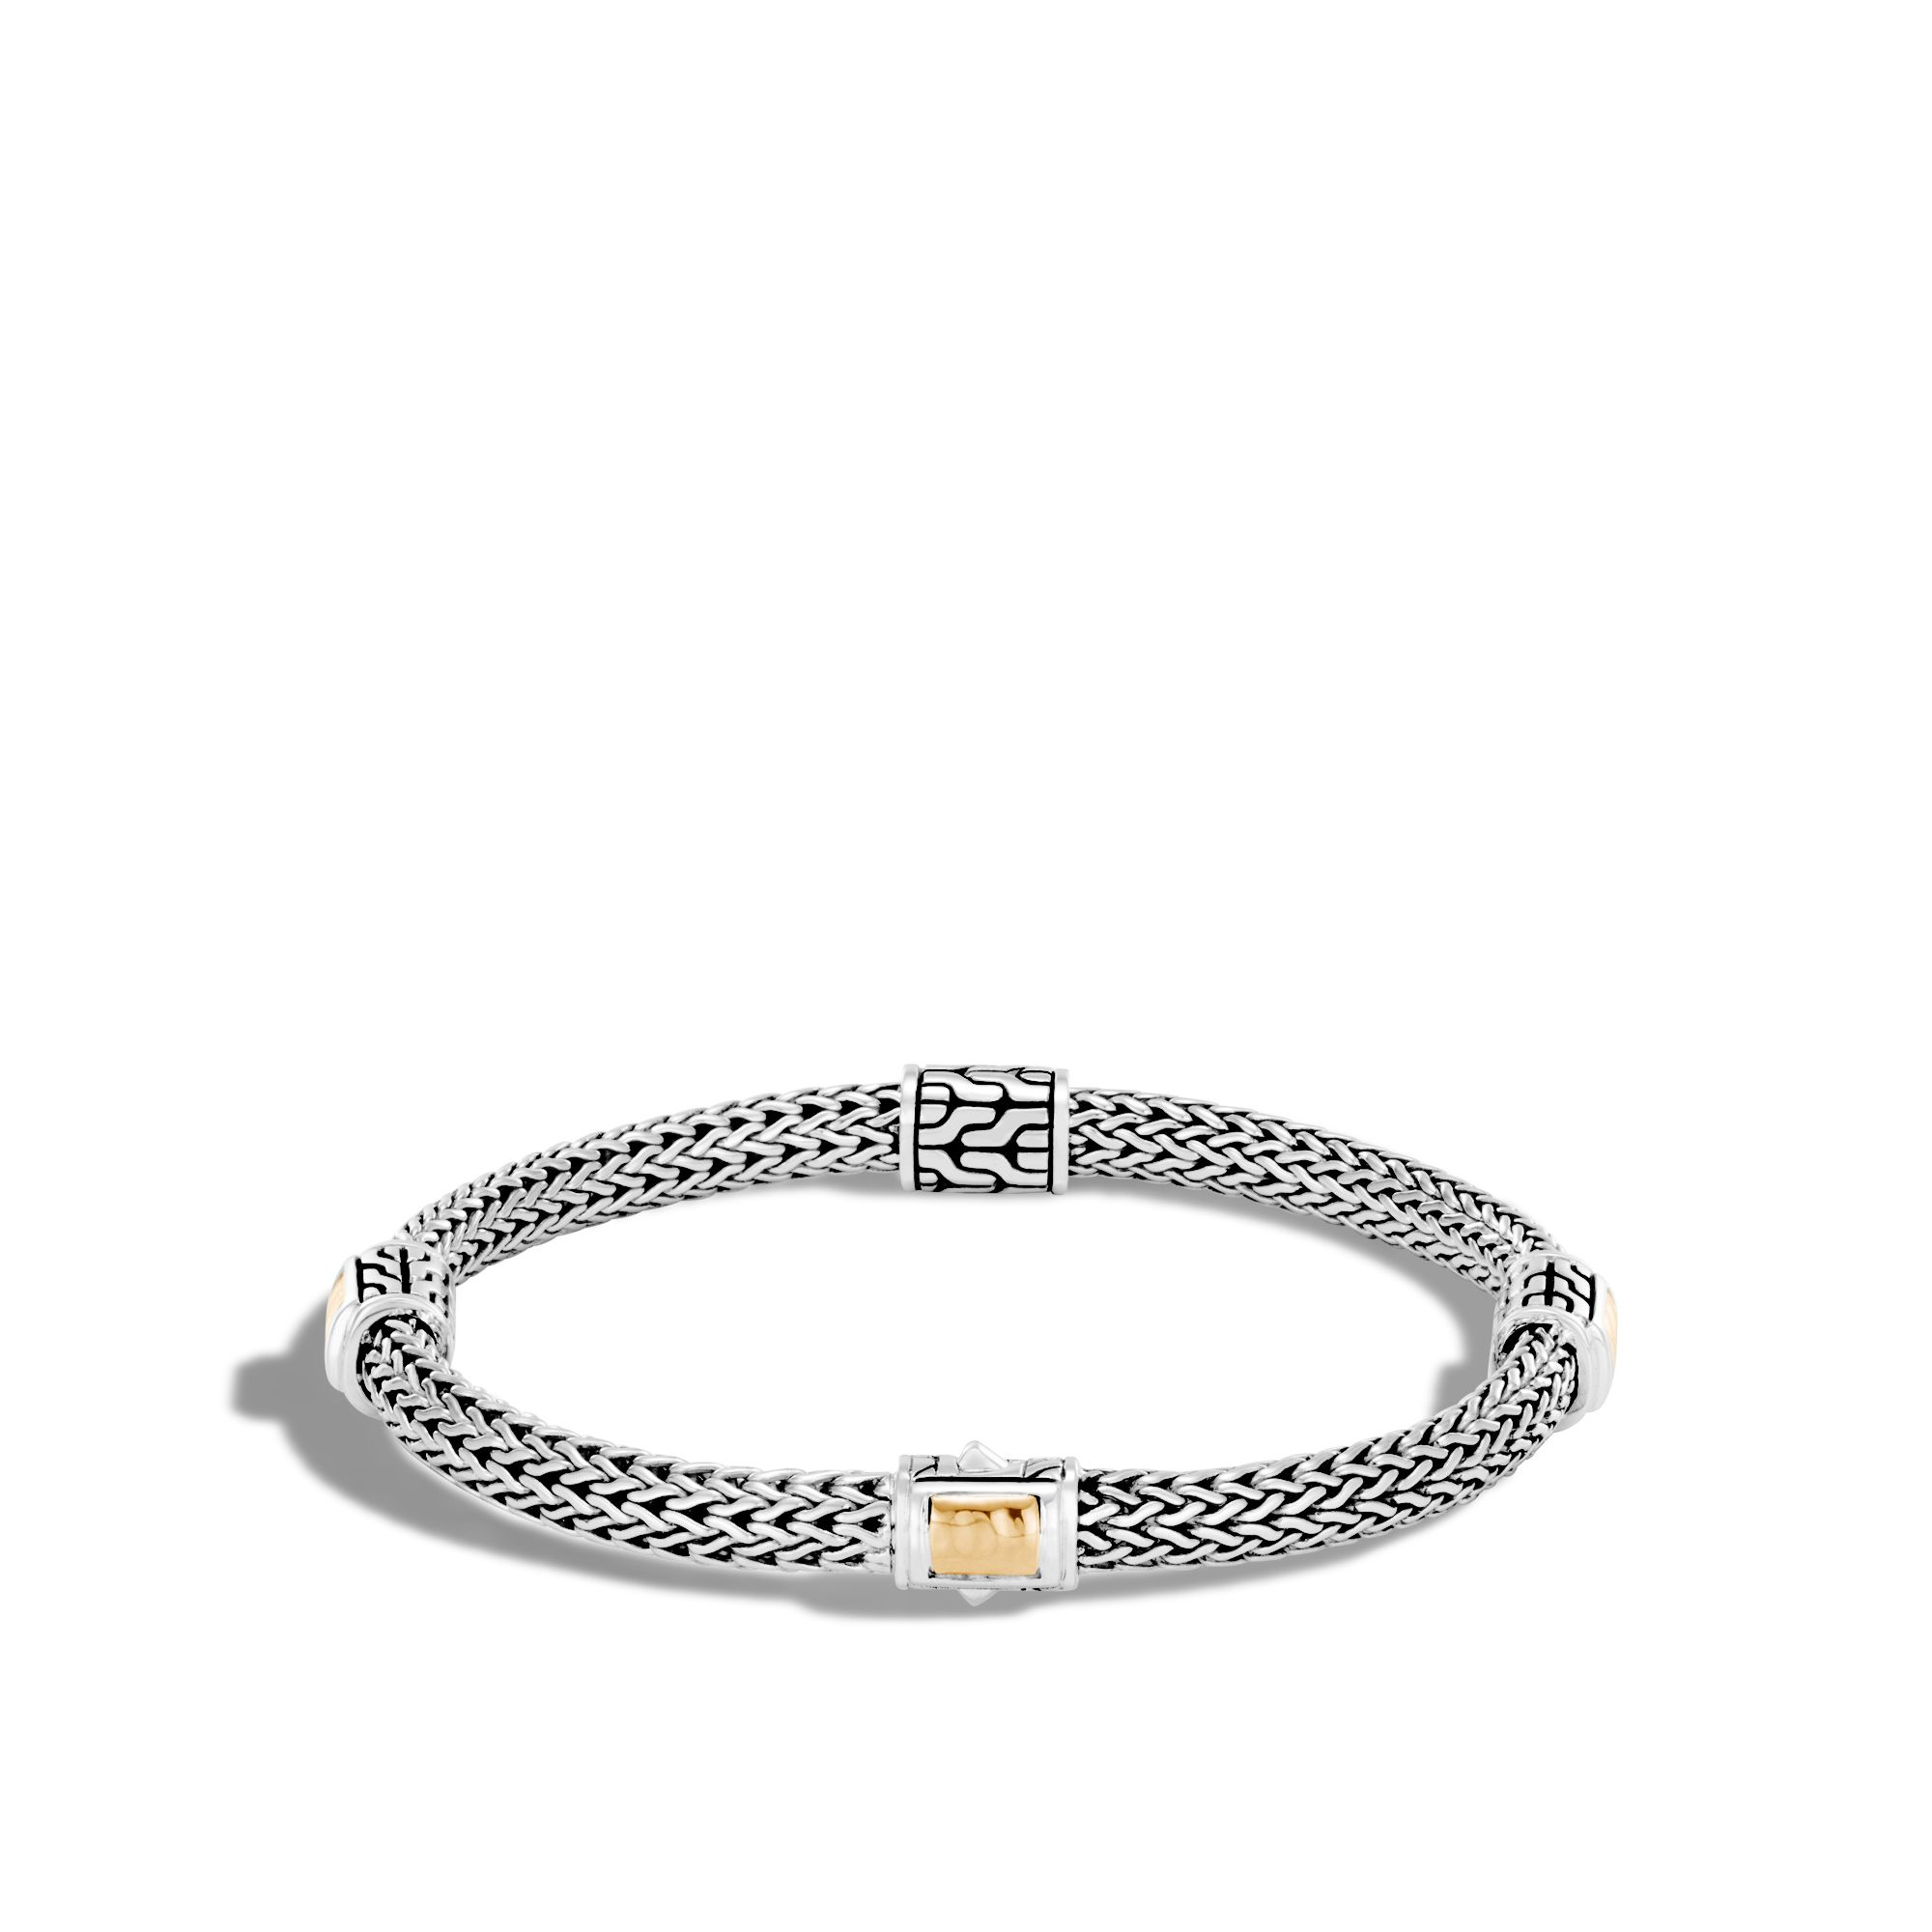 John Hardy Classic Chain Hammered 18K & Silver Bracelet with Diamonds